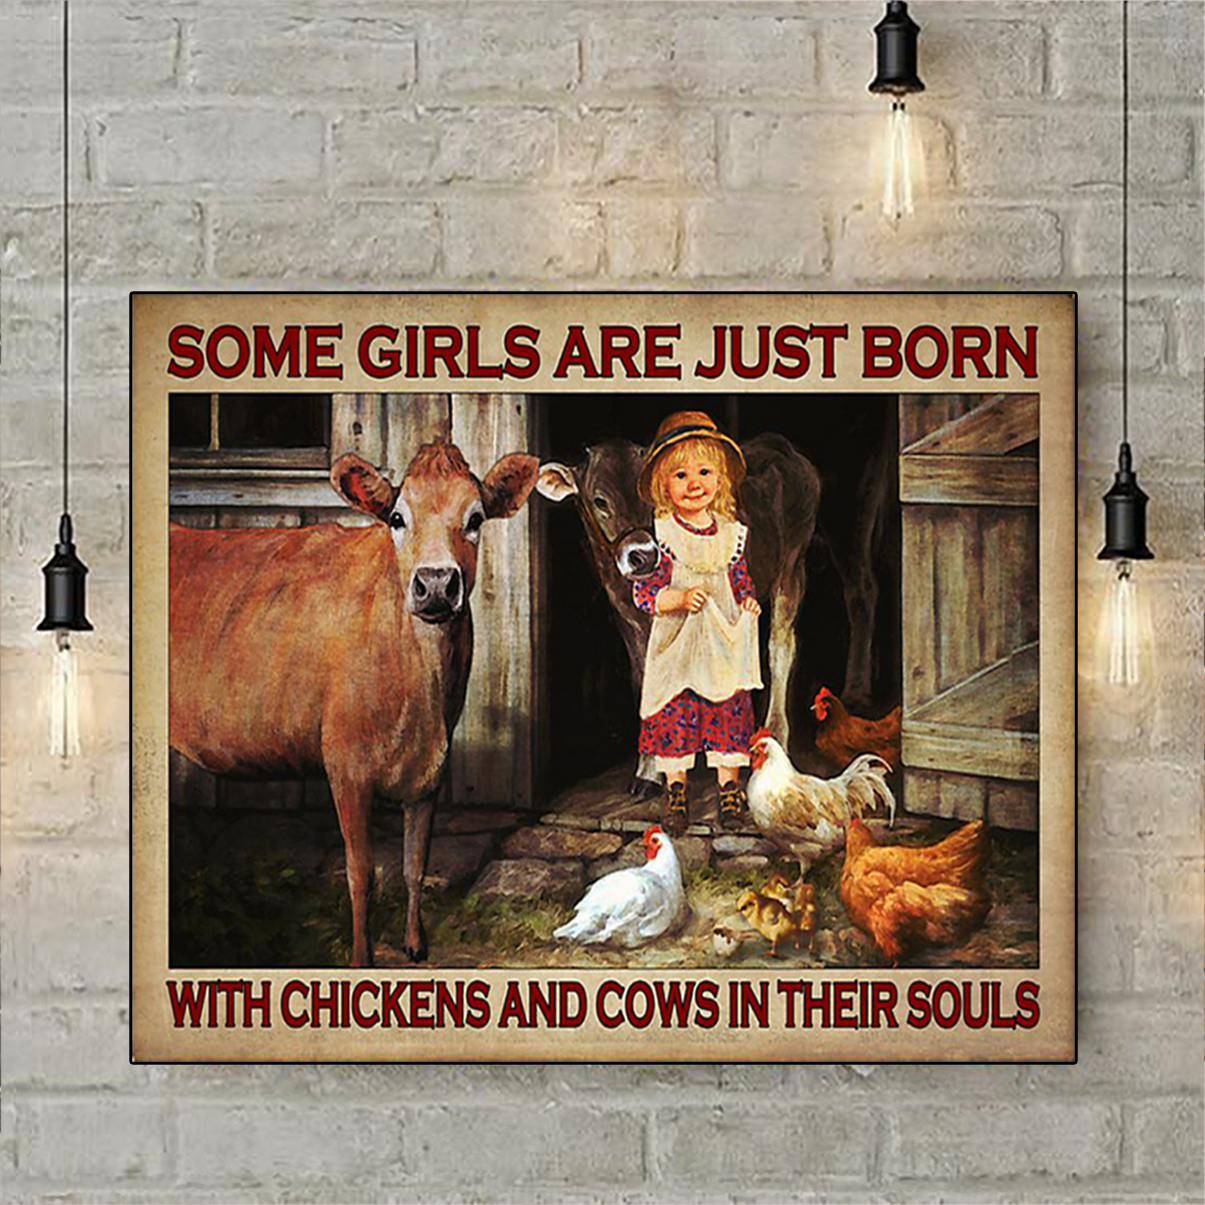 Some girls are just born with chickens and cows in their souls poster A1